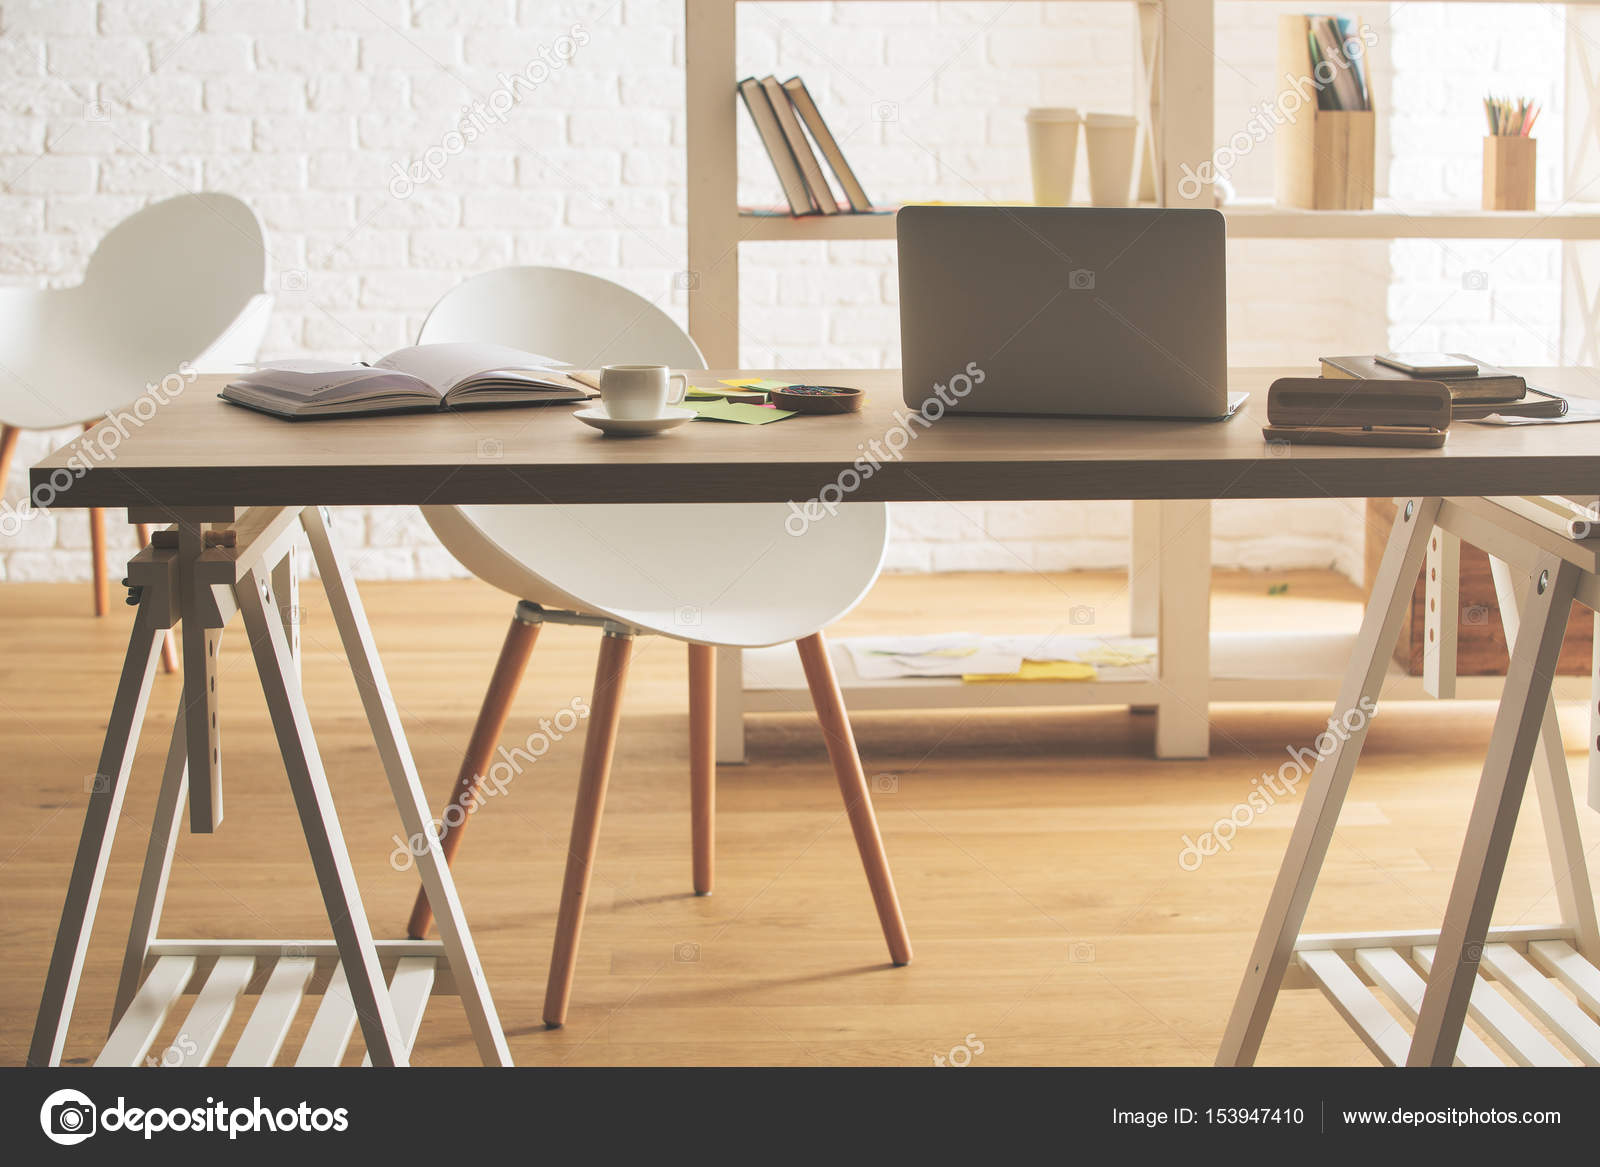 Charmant Hipster Office Interior With Device, Supplies And Coffee Cup On Table U2014  Stock Photo